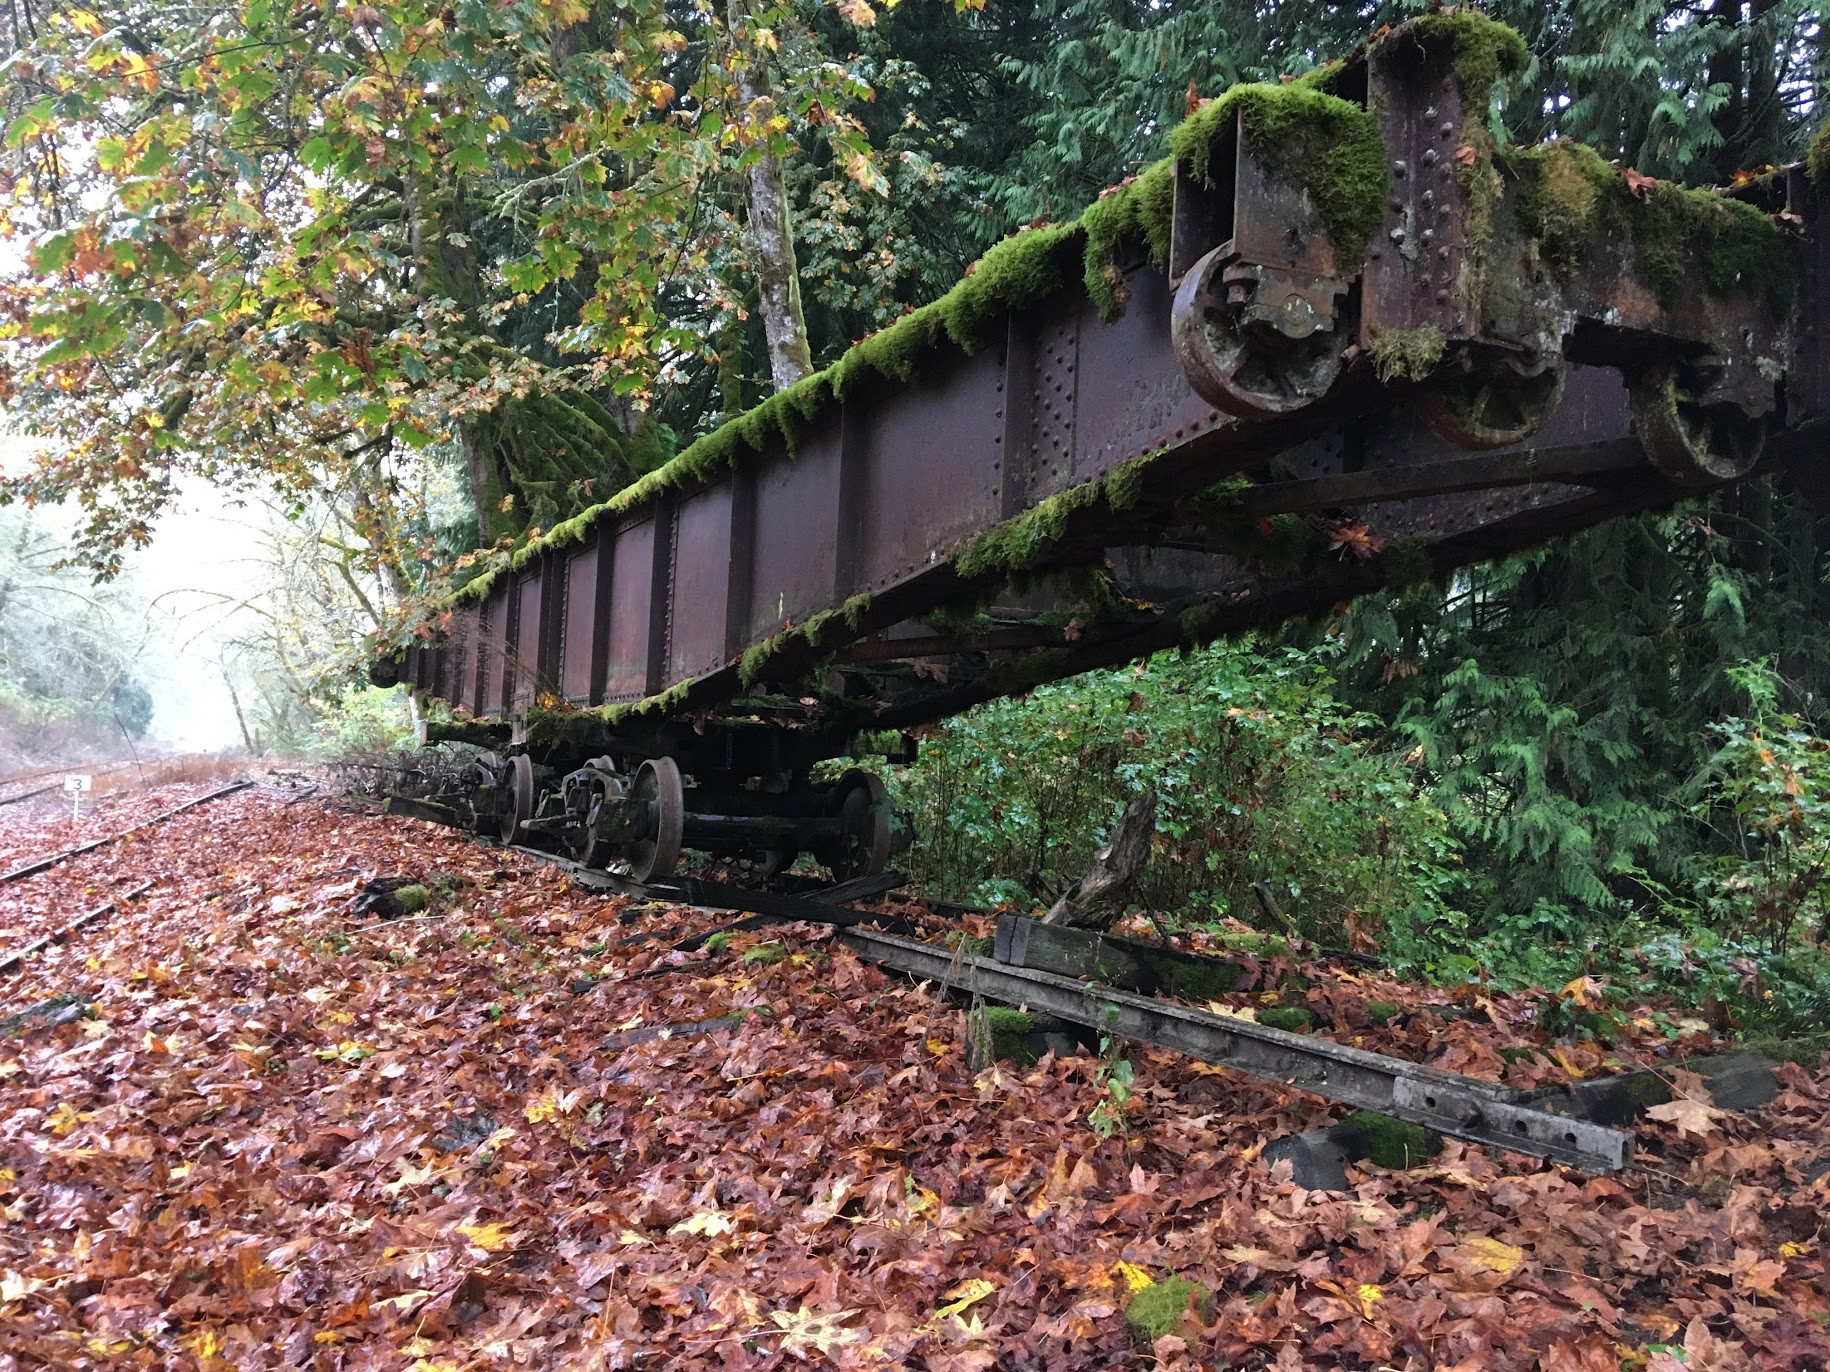 A railroad turntable sitting upon two sets of wheels on tracks in the forest